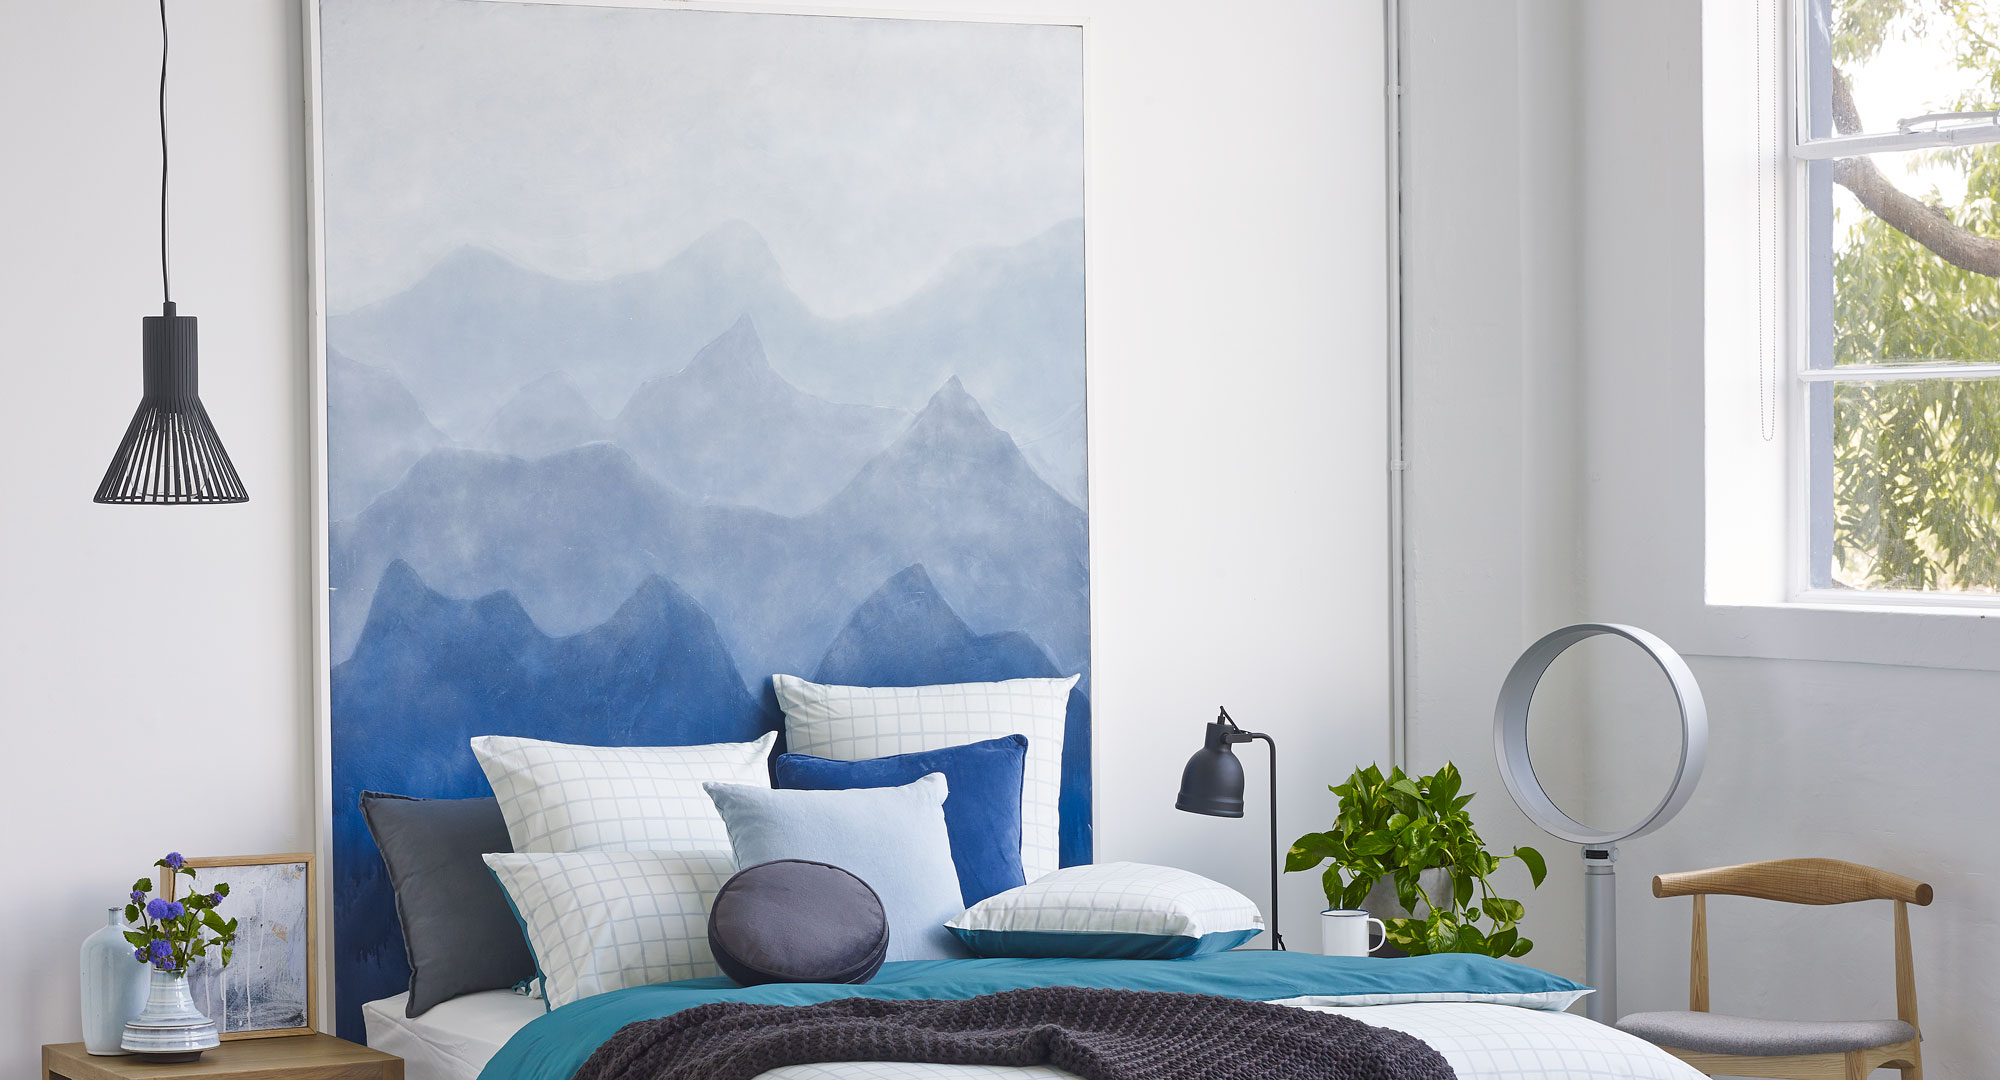 Build A Better Bedroom: Bedroom Ideas: Make Your Own Mountainous Bedhead Mural